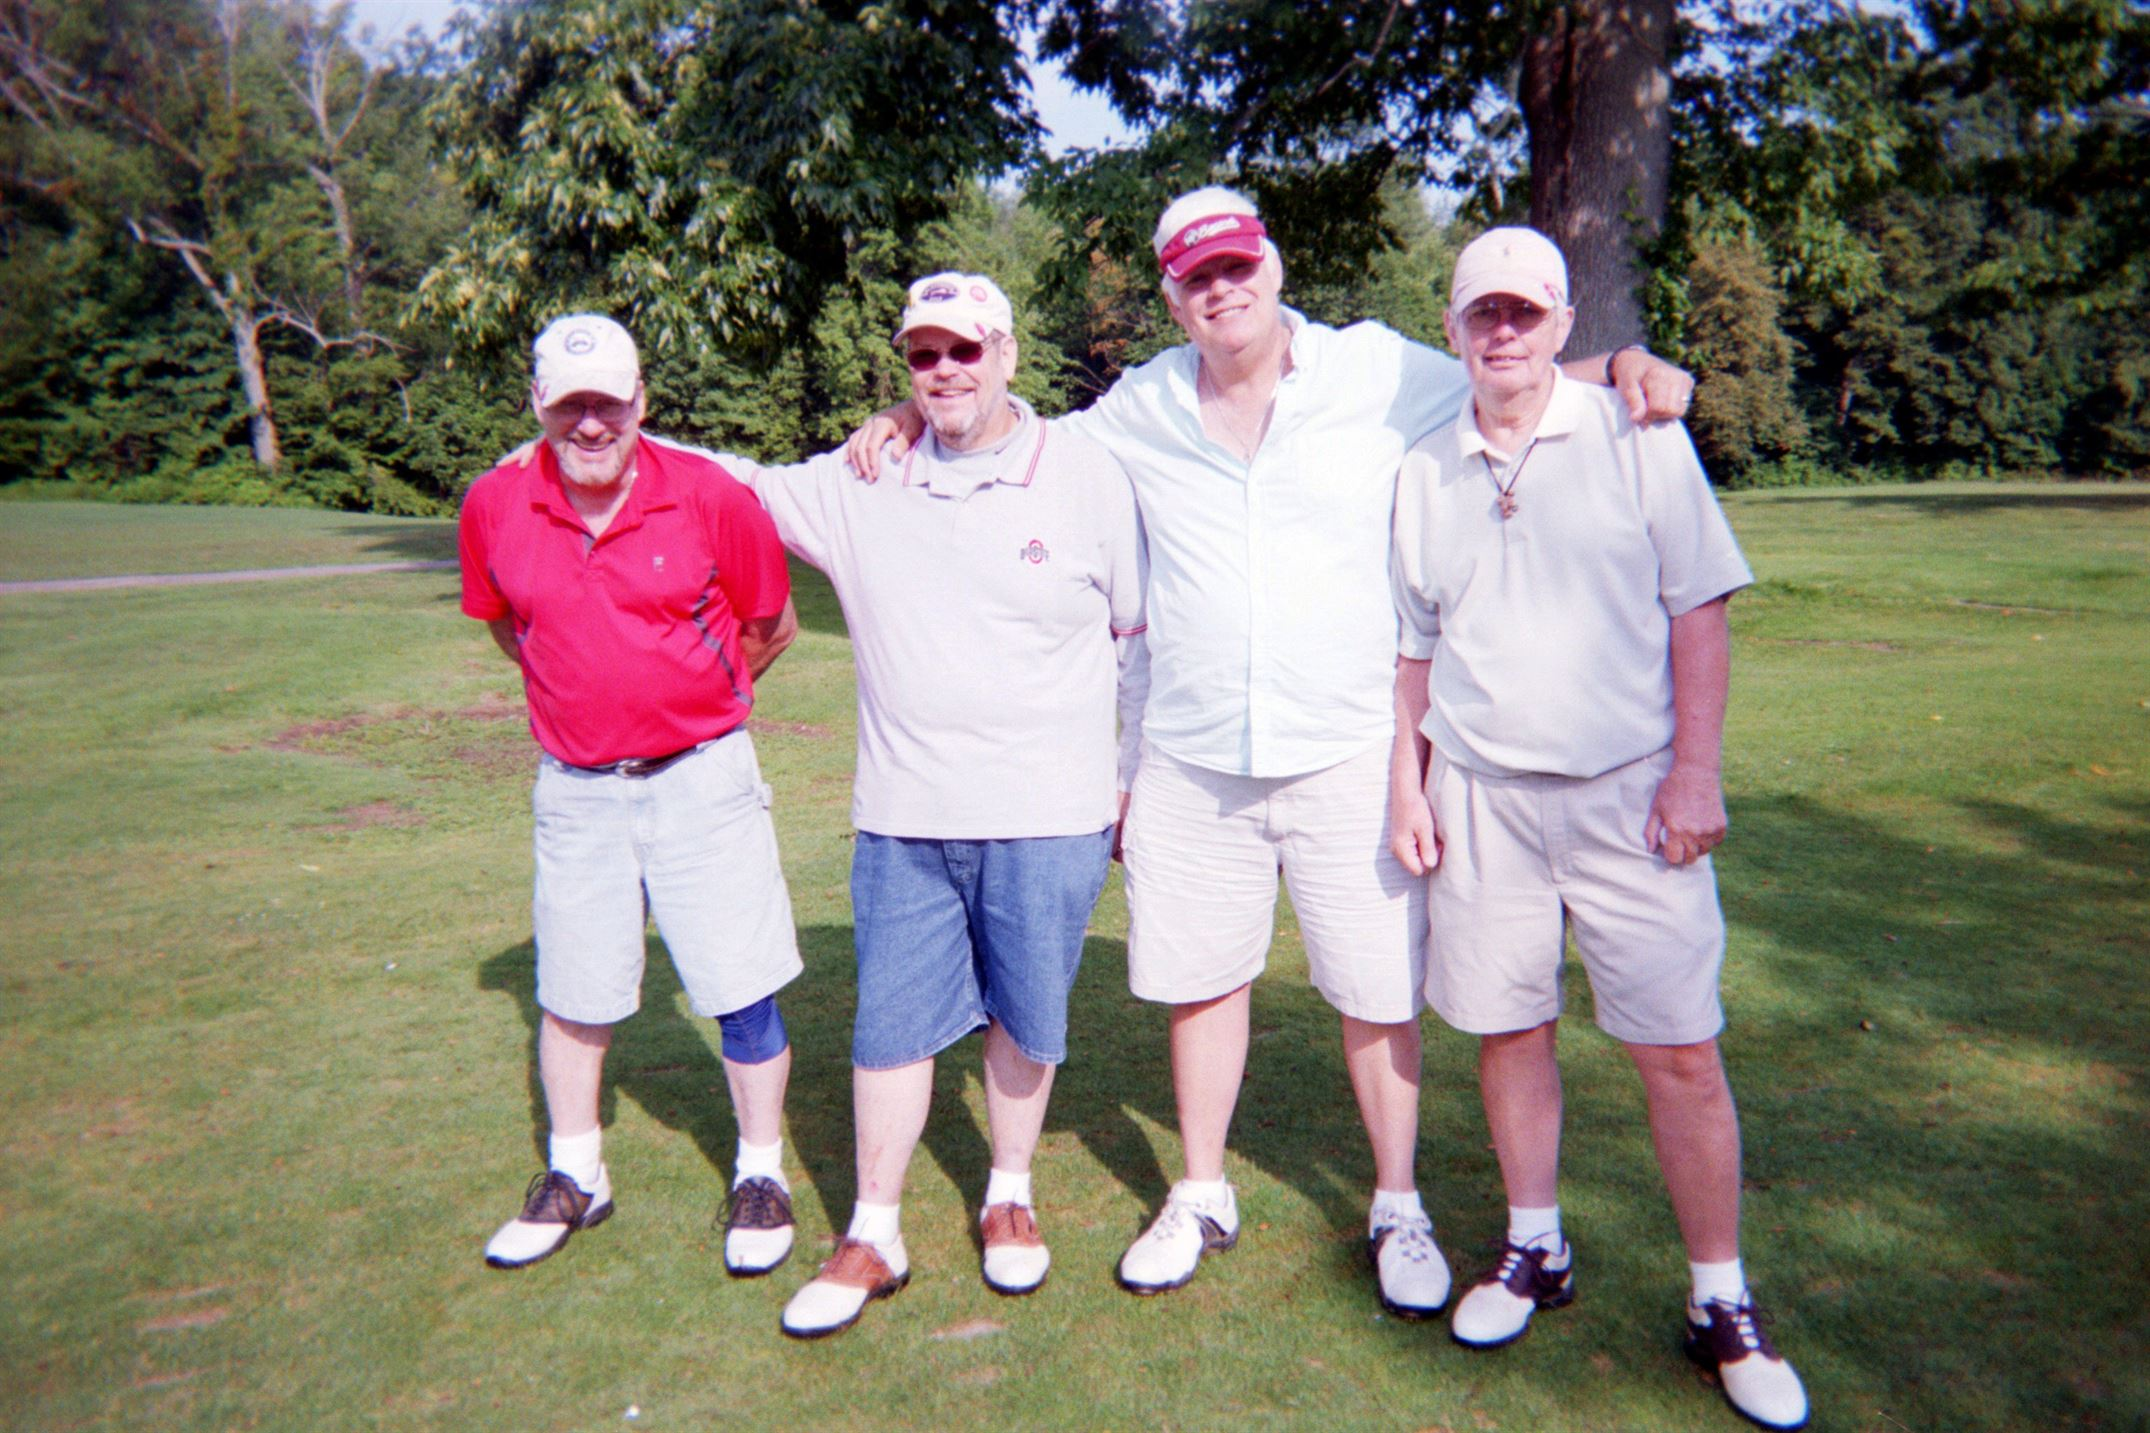 Mike Menough, Rick Kimmy, Doug Warren, Dave Warren